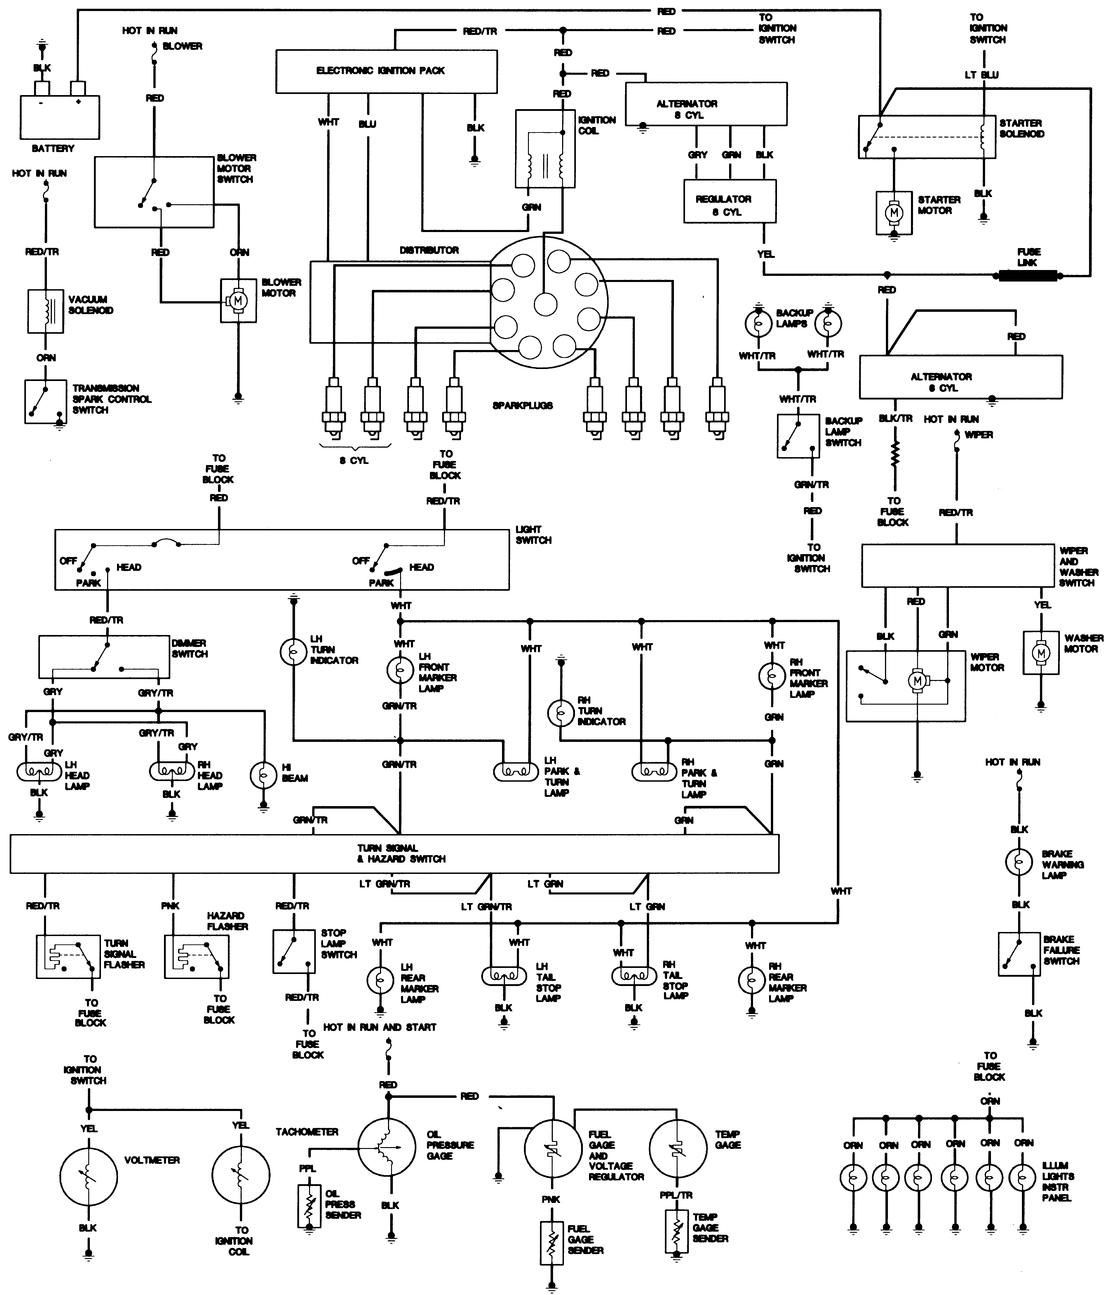 medium resolution of 1980 cj5 wiring diagram furthermore jeep cj7 tachometer wiring 1980 cj5 wiring schematic for